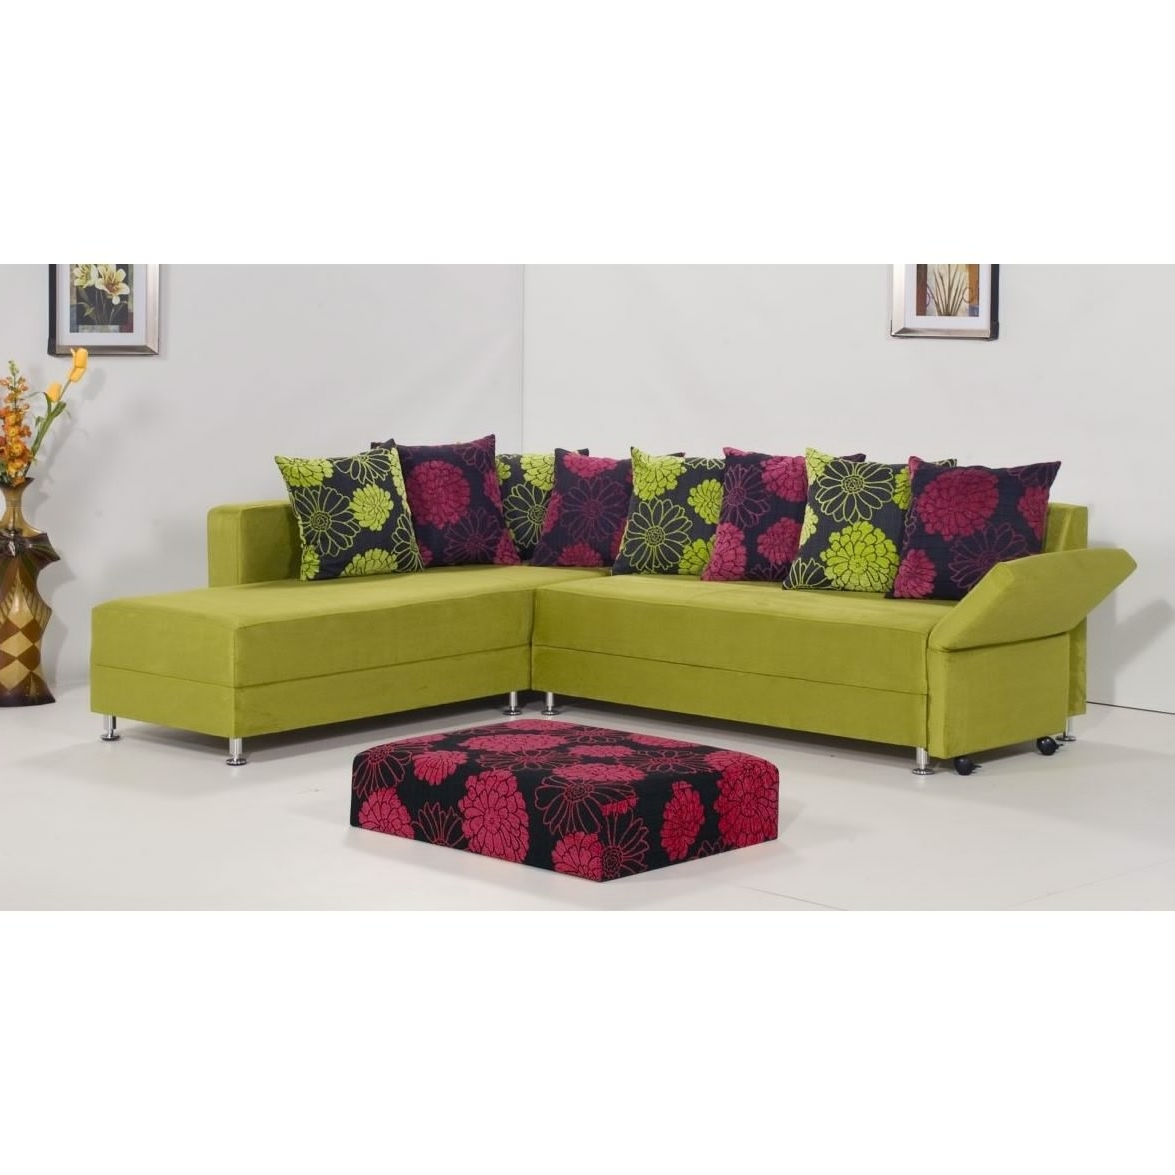 Popular Green Sectional Sofas Within Sectional Sofa Design: Green Leather Sectional Sofa Chaise Lyrics (View 17 of 20)